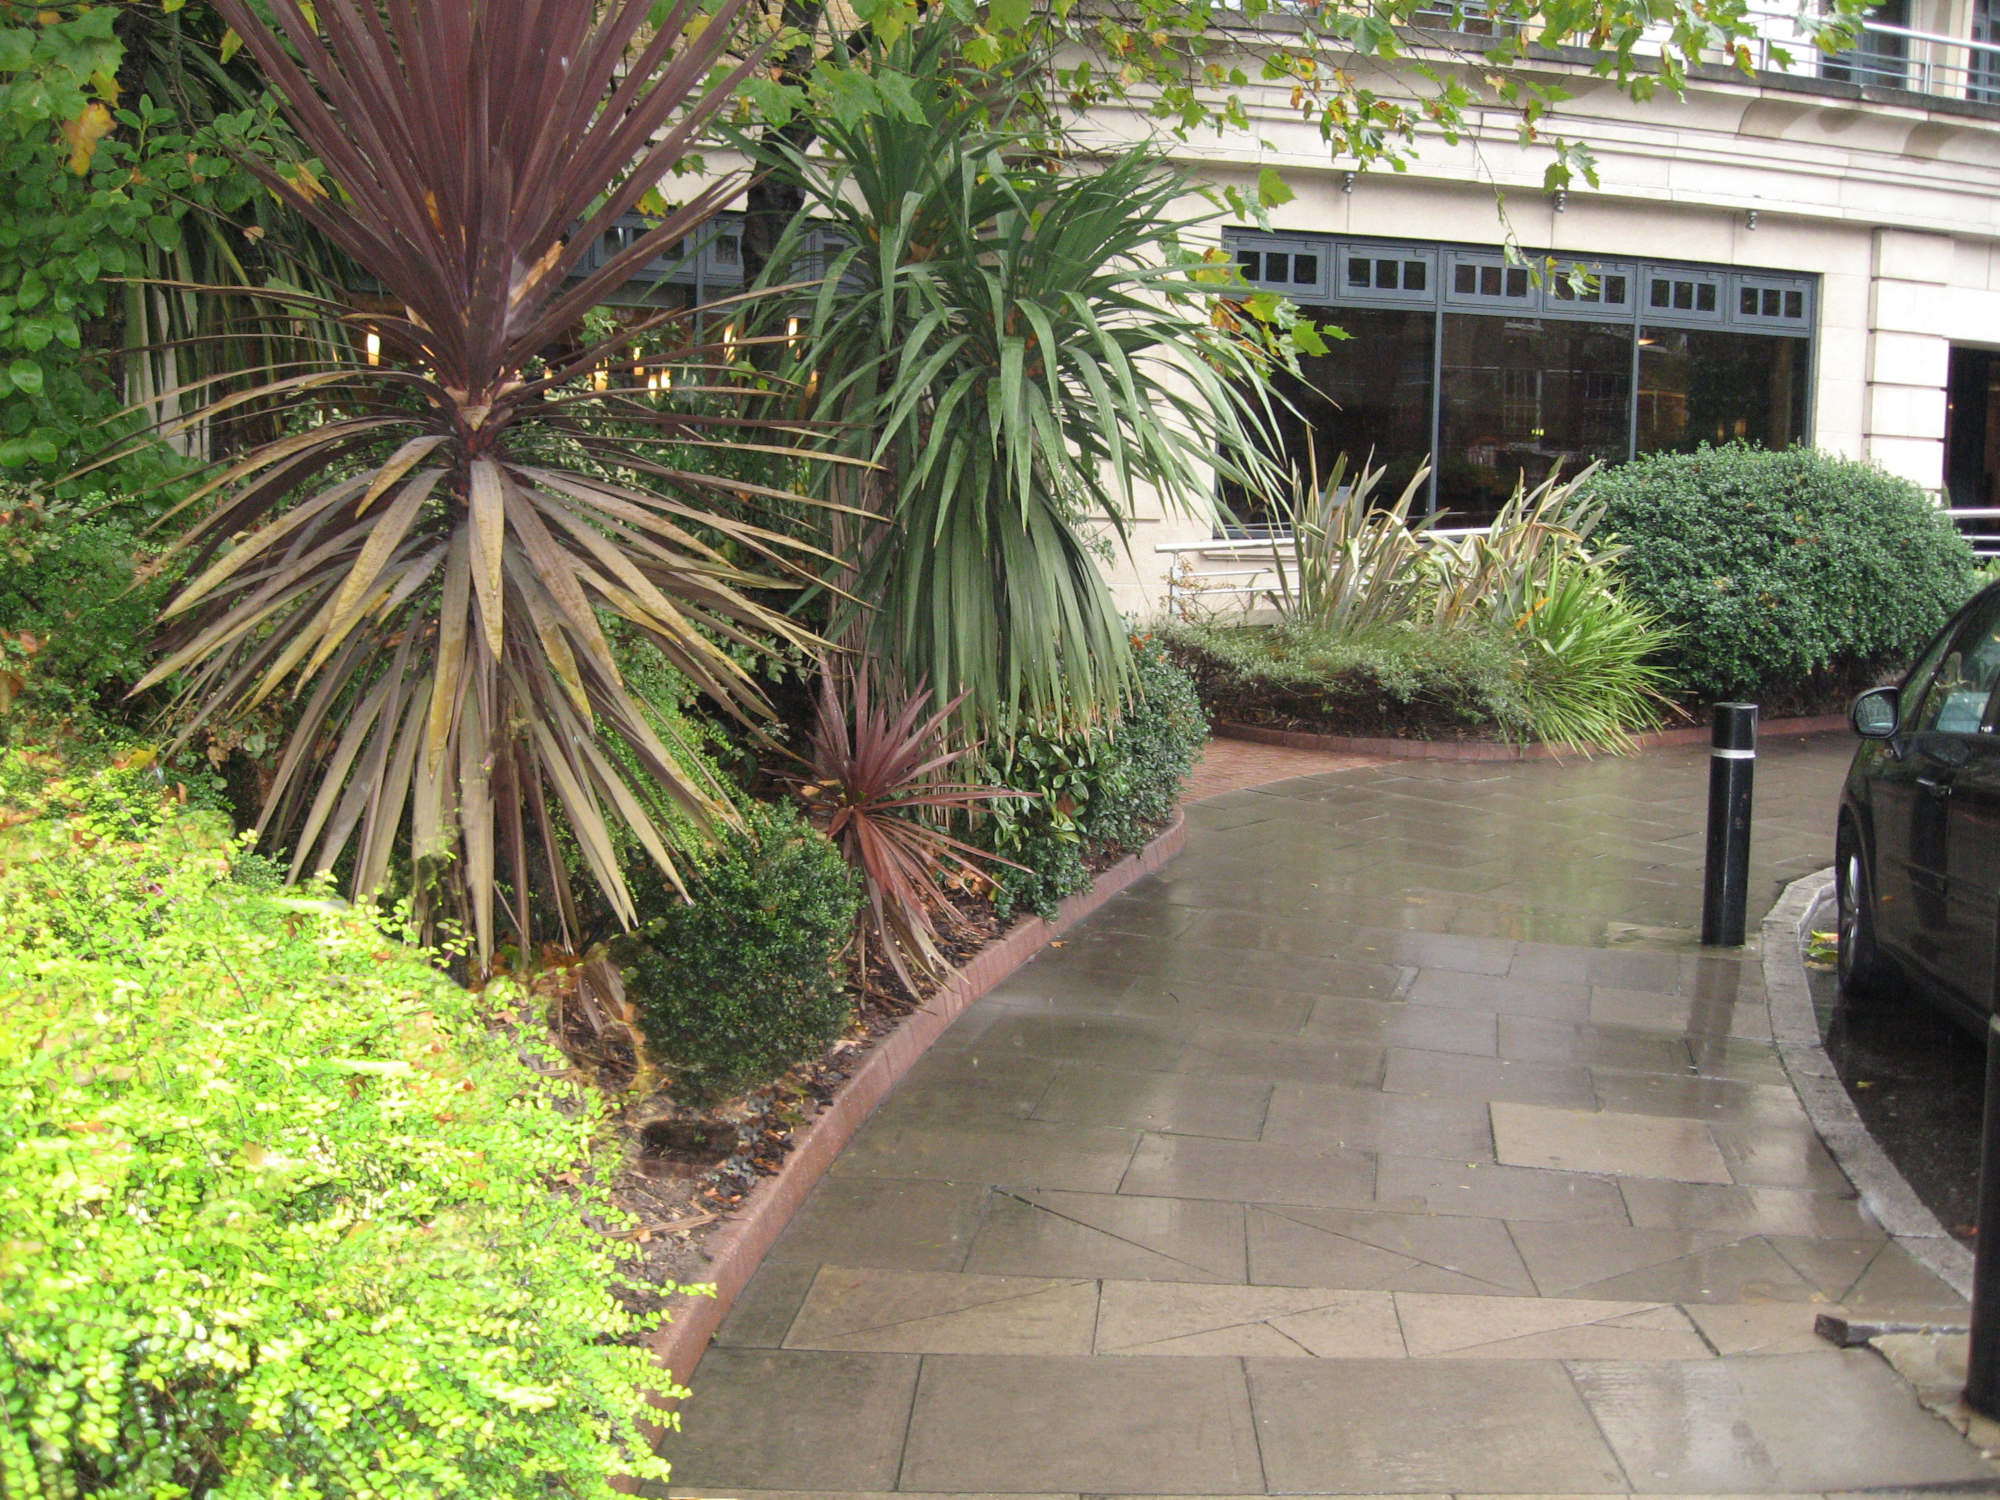 Commercial Hotel Grounds